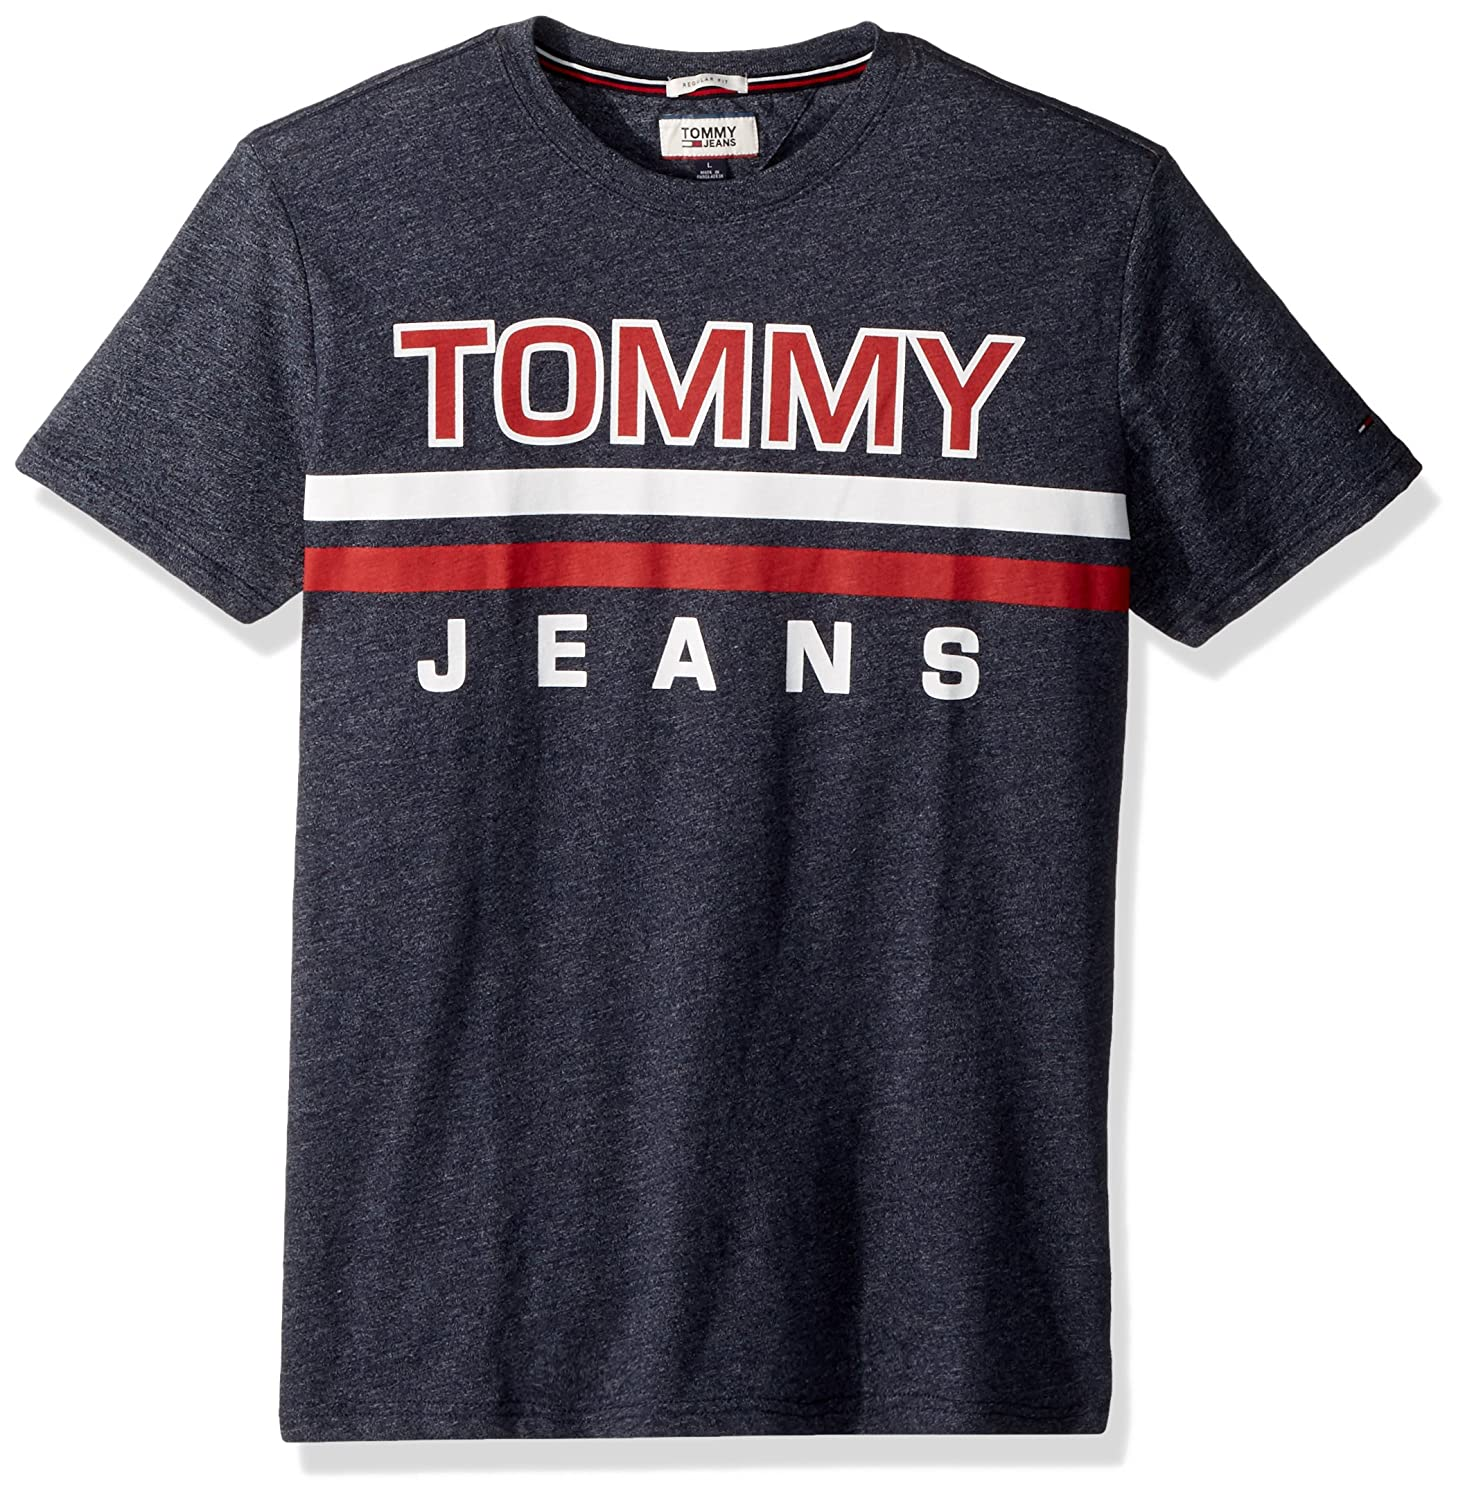 Tommy Hilfiger Mens T Shirt Short Sleeve Graphic Logo Tee